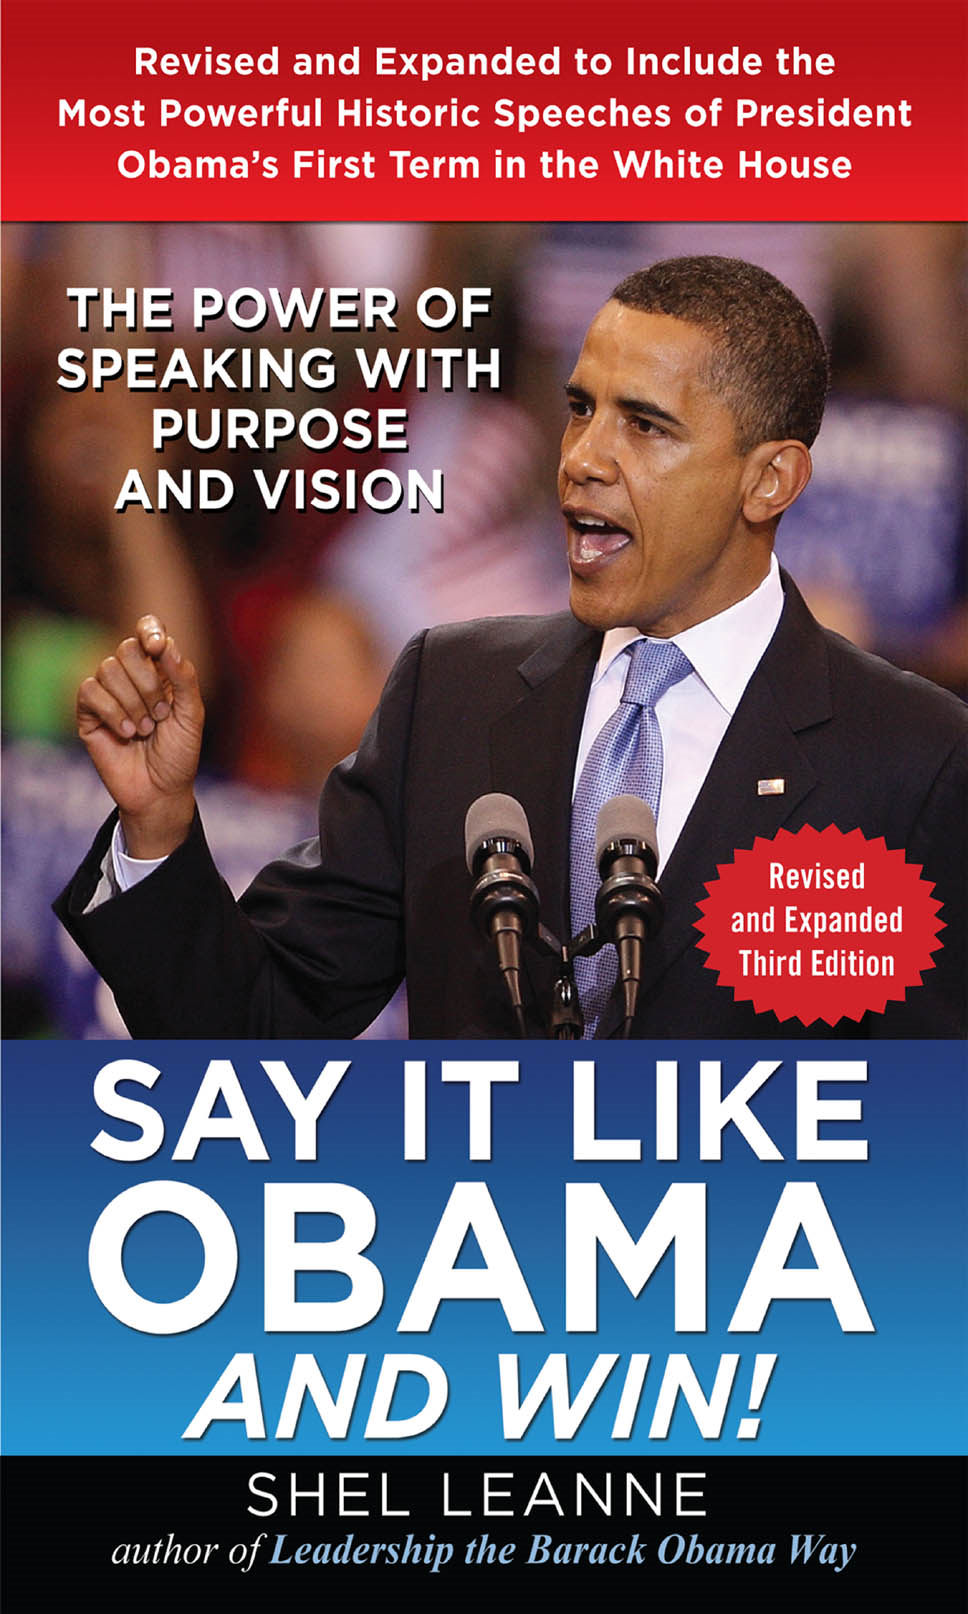 Say it Like Obama and Win!: The Power of Speaking with Purpose and Vision, Revised and Expanded Third Edition By: Shel Leanne